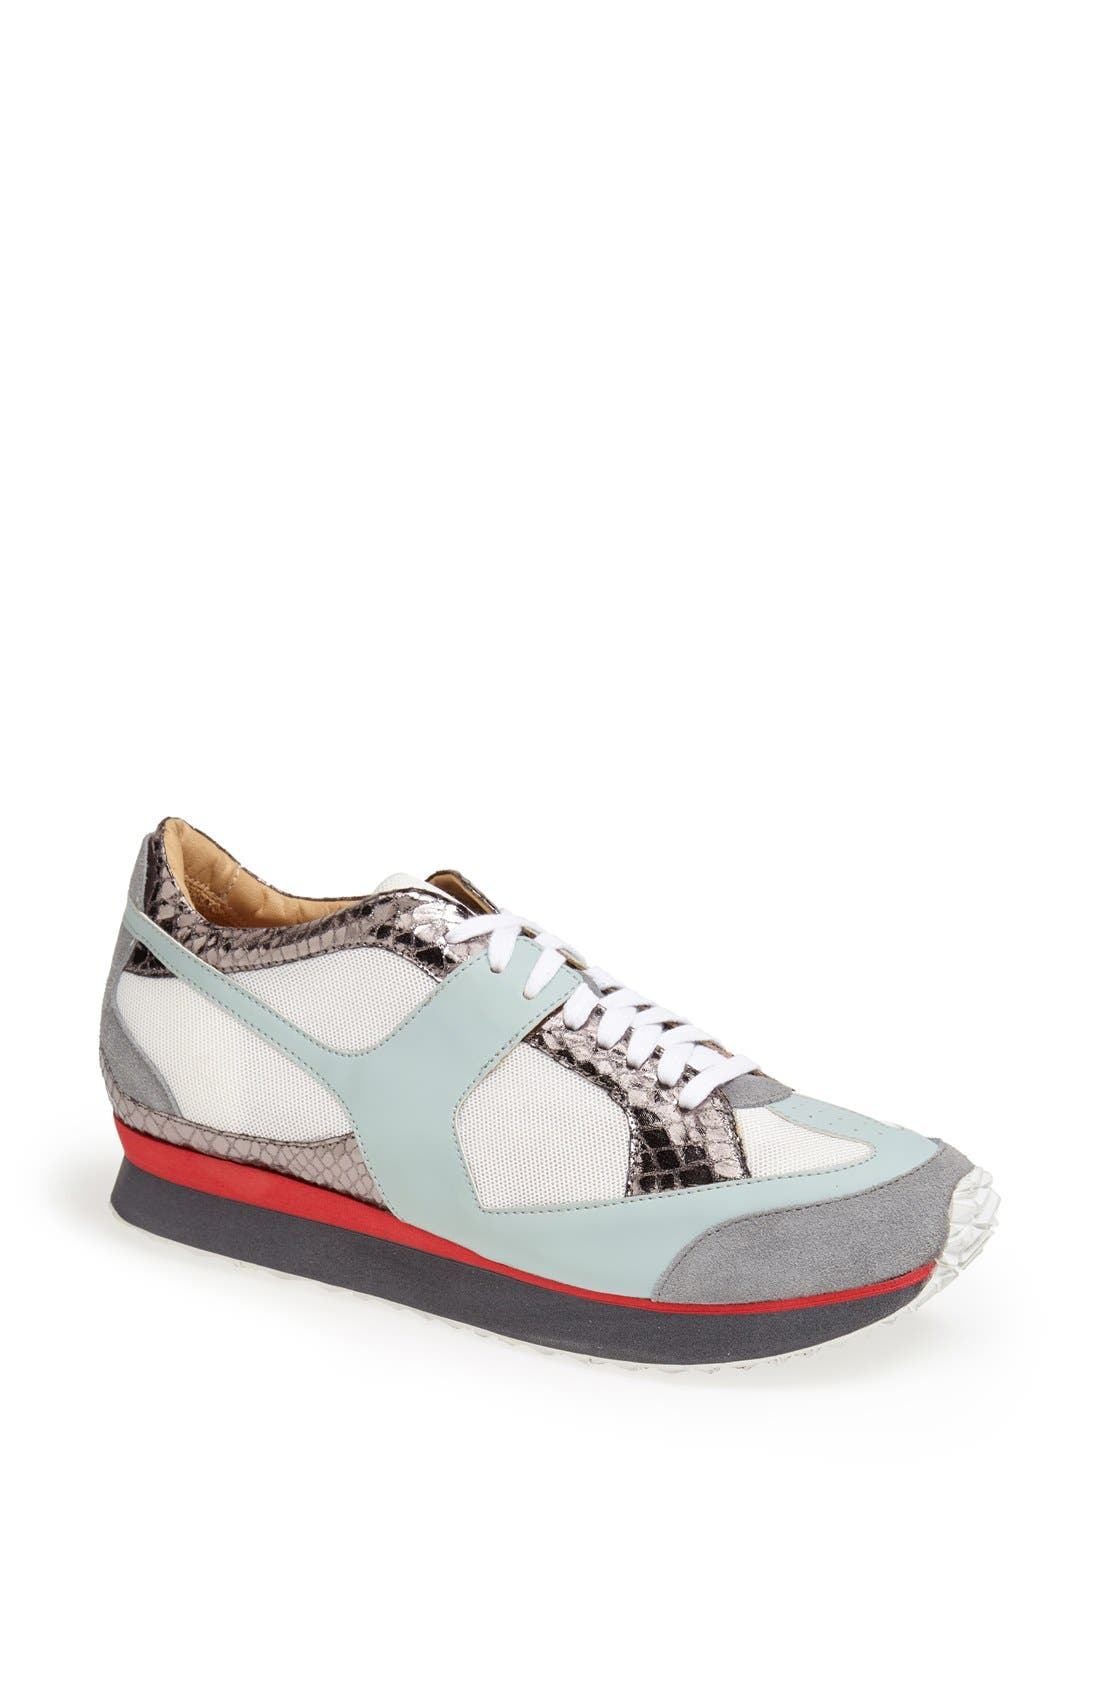 Alternate Image 1 Selected - MM6 Maison Margiela Sneaker